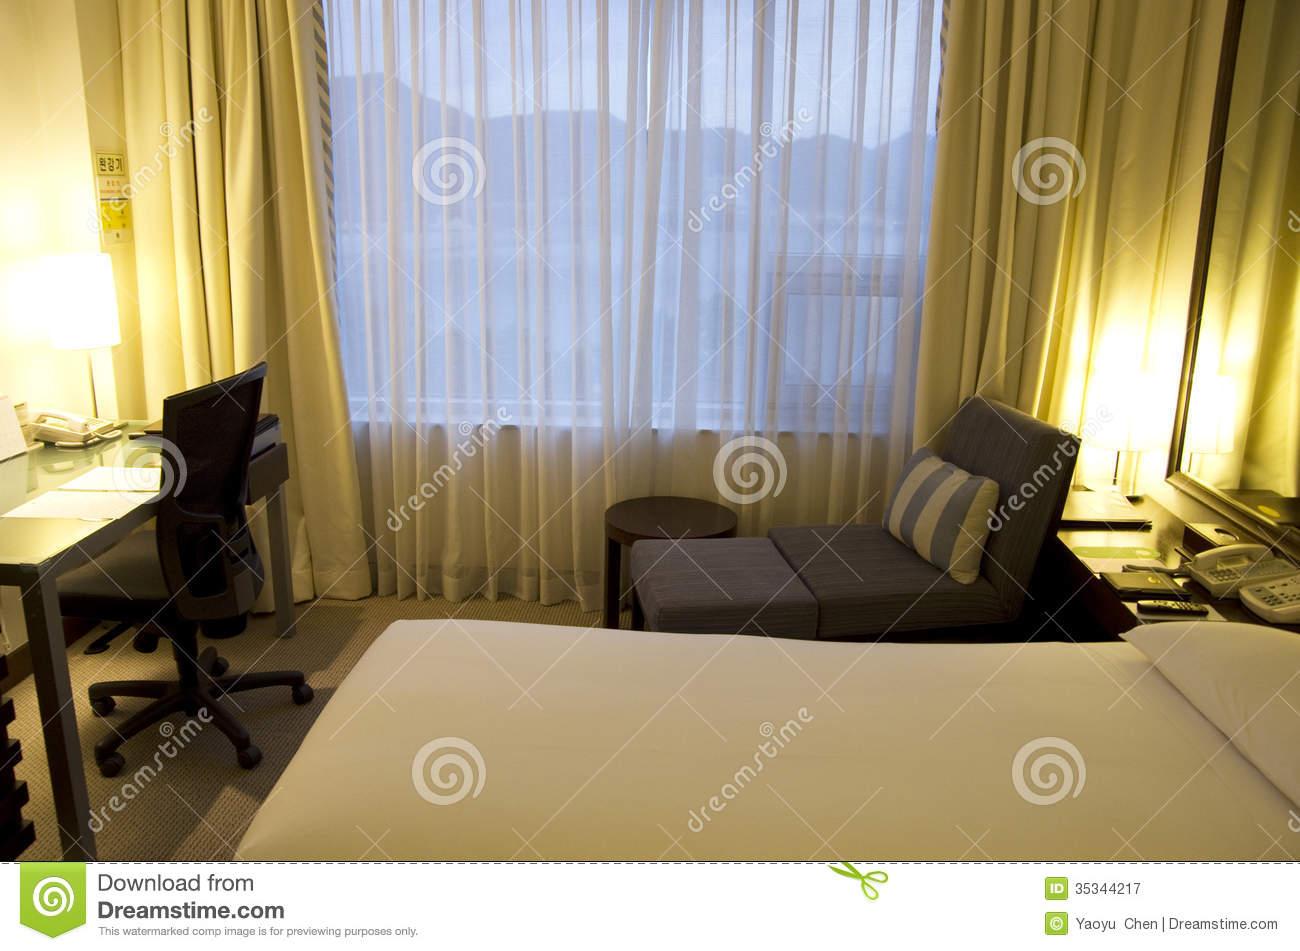 Small modern hotel room beds royalty free stock for Great small luxury hotels